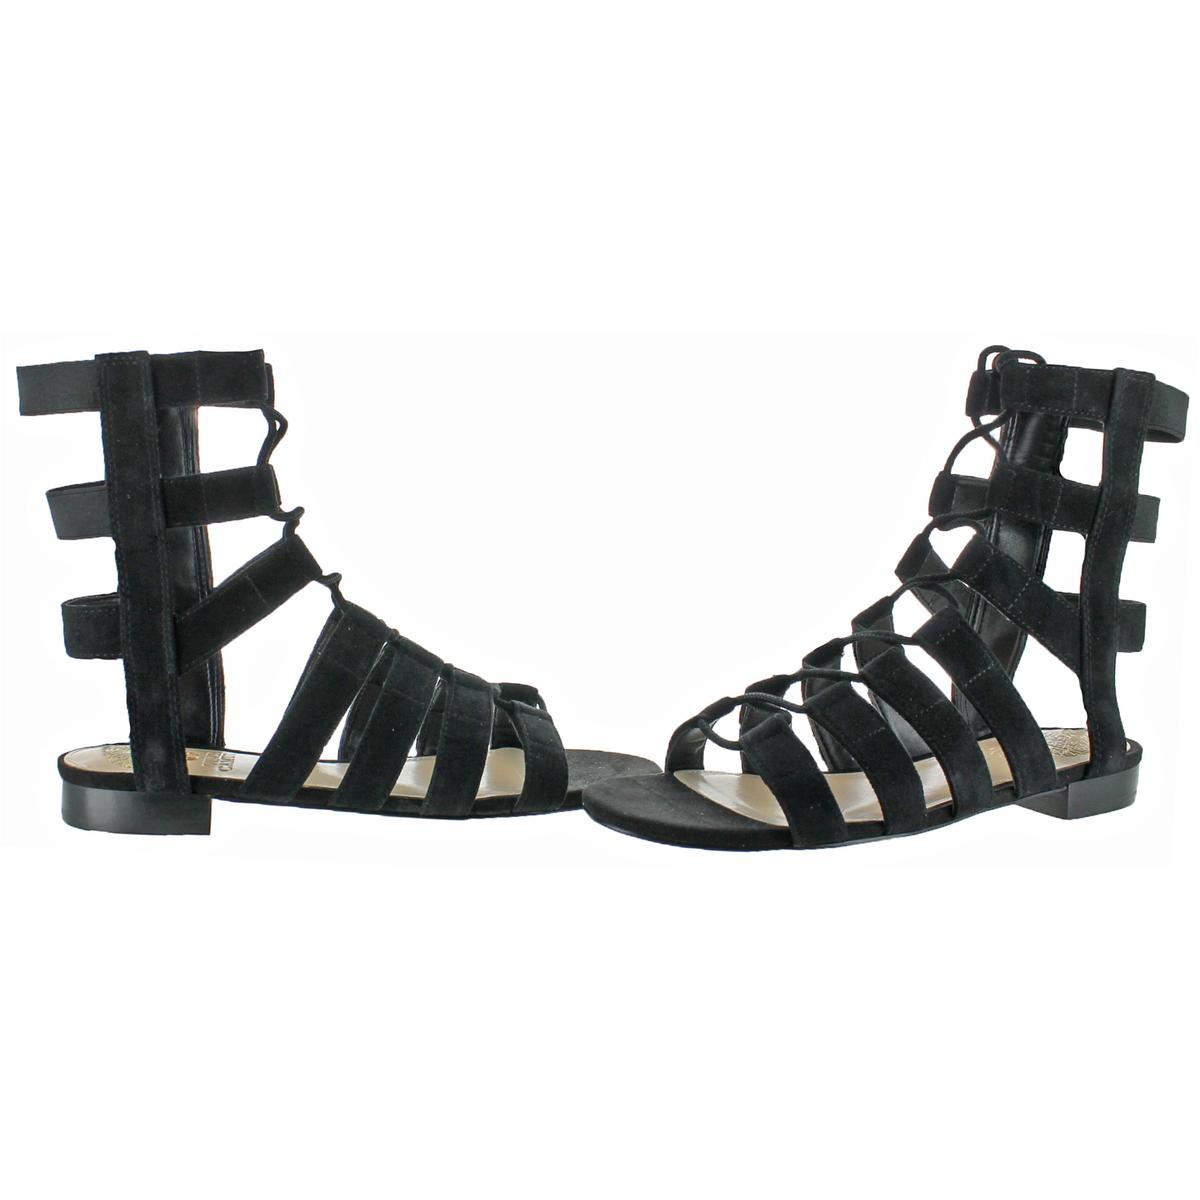 7fbb6f5dc4d1 Vince Camuto Helayn Women s Suede Open Toe Ghillie Caged Sandals ...